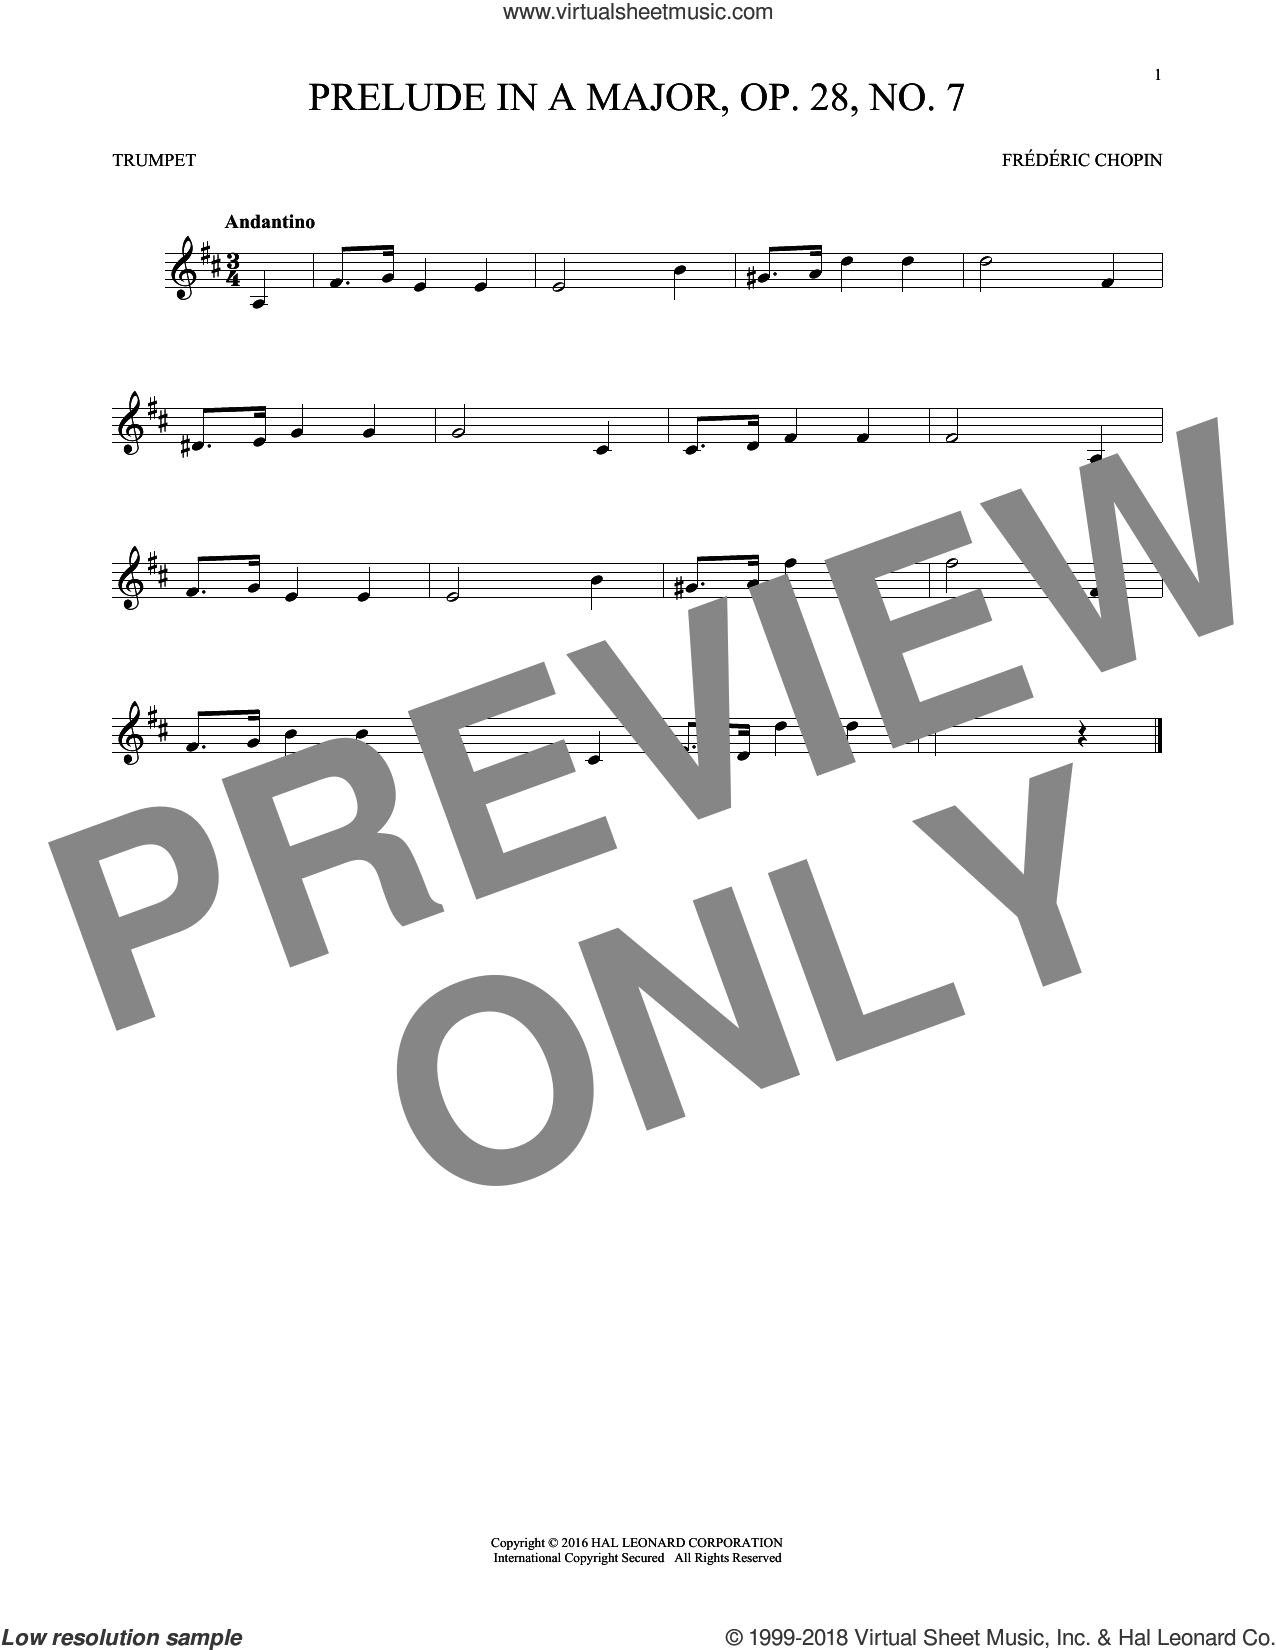 Prelude In A Major, Op. 28, No. 7 sheet music for trumpet solo by Frederic Chopin, classical score, intermediate skill level